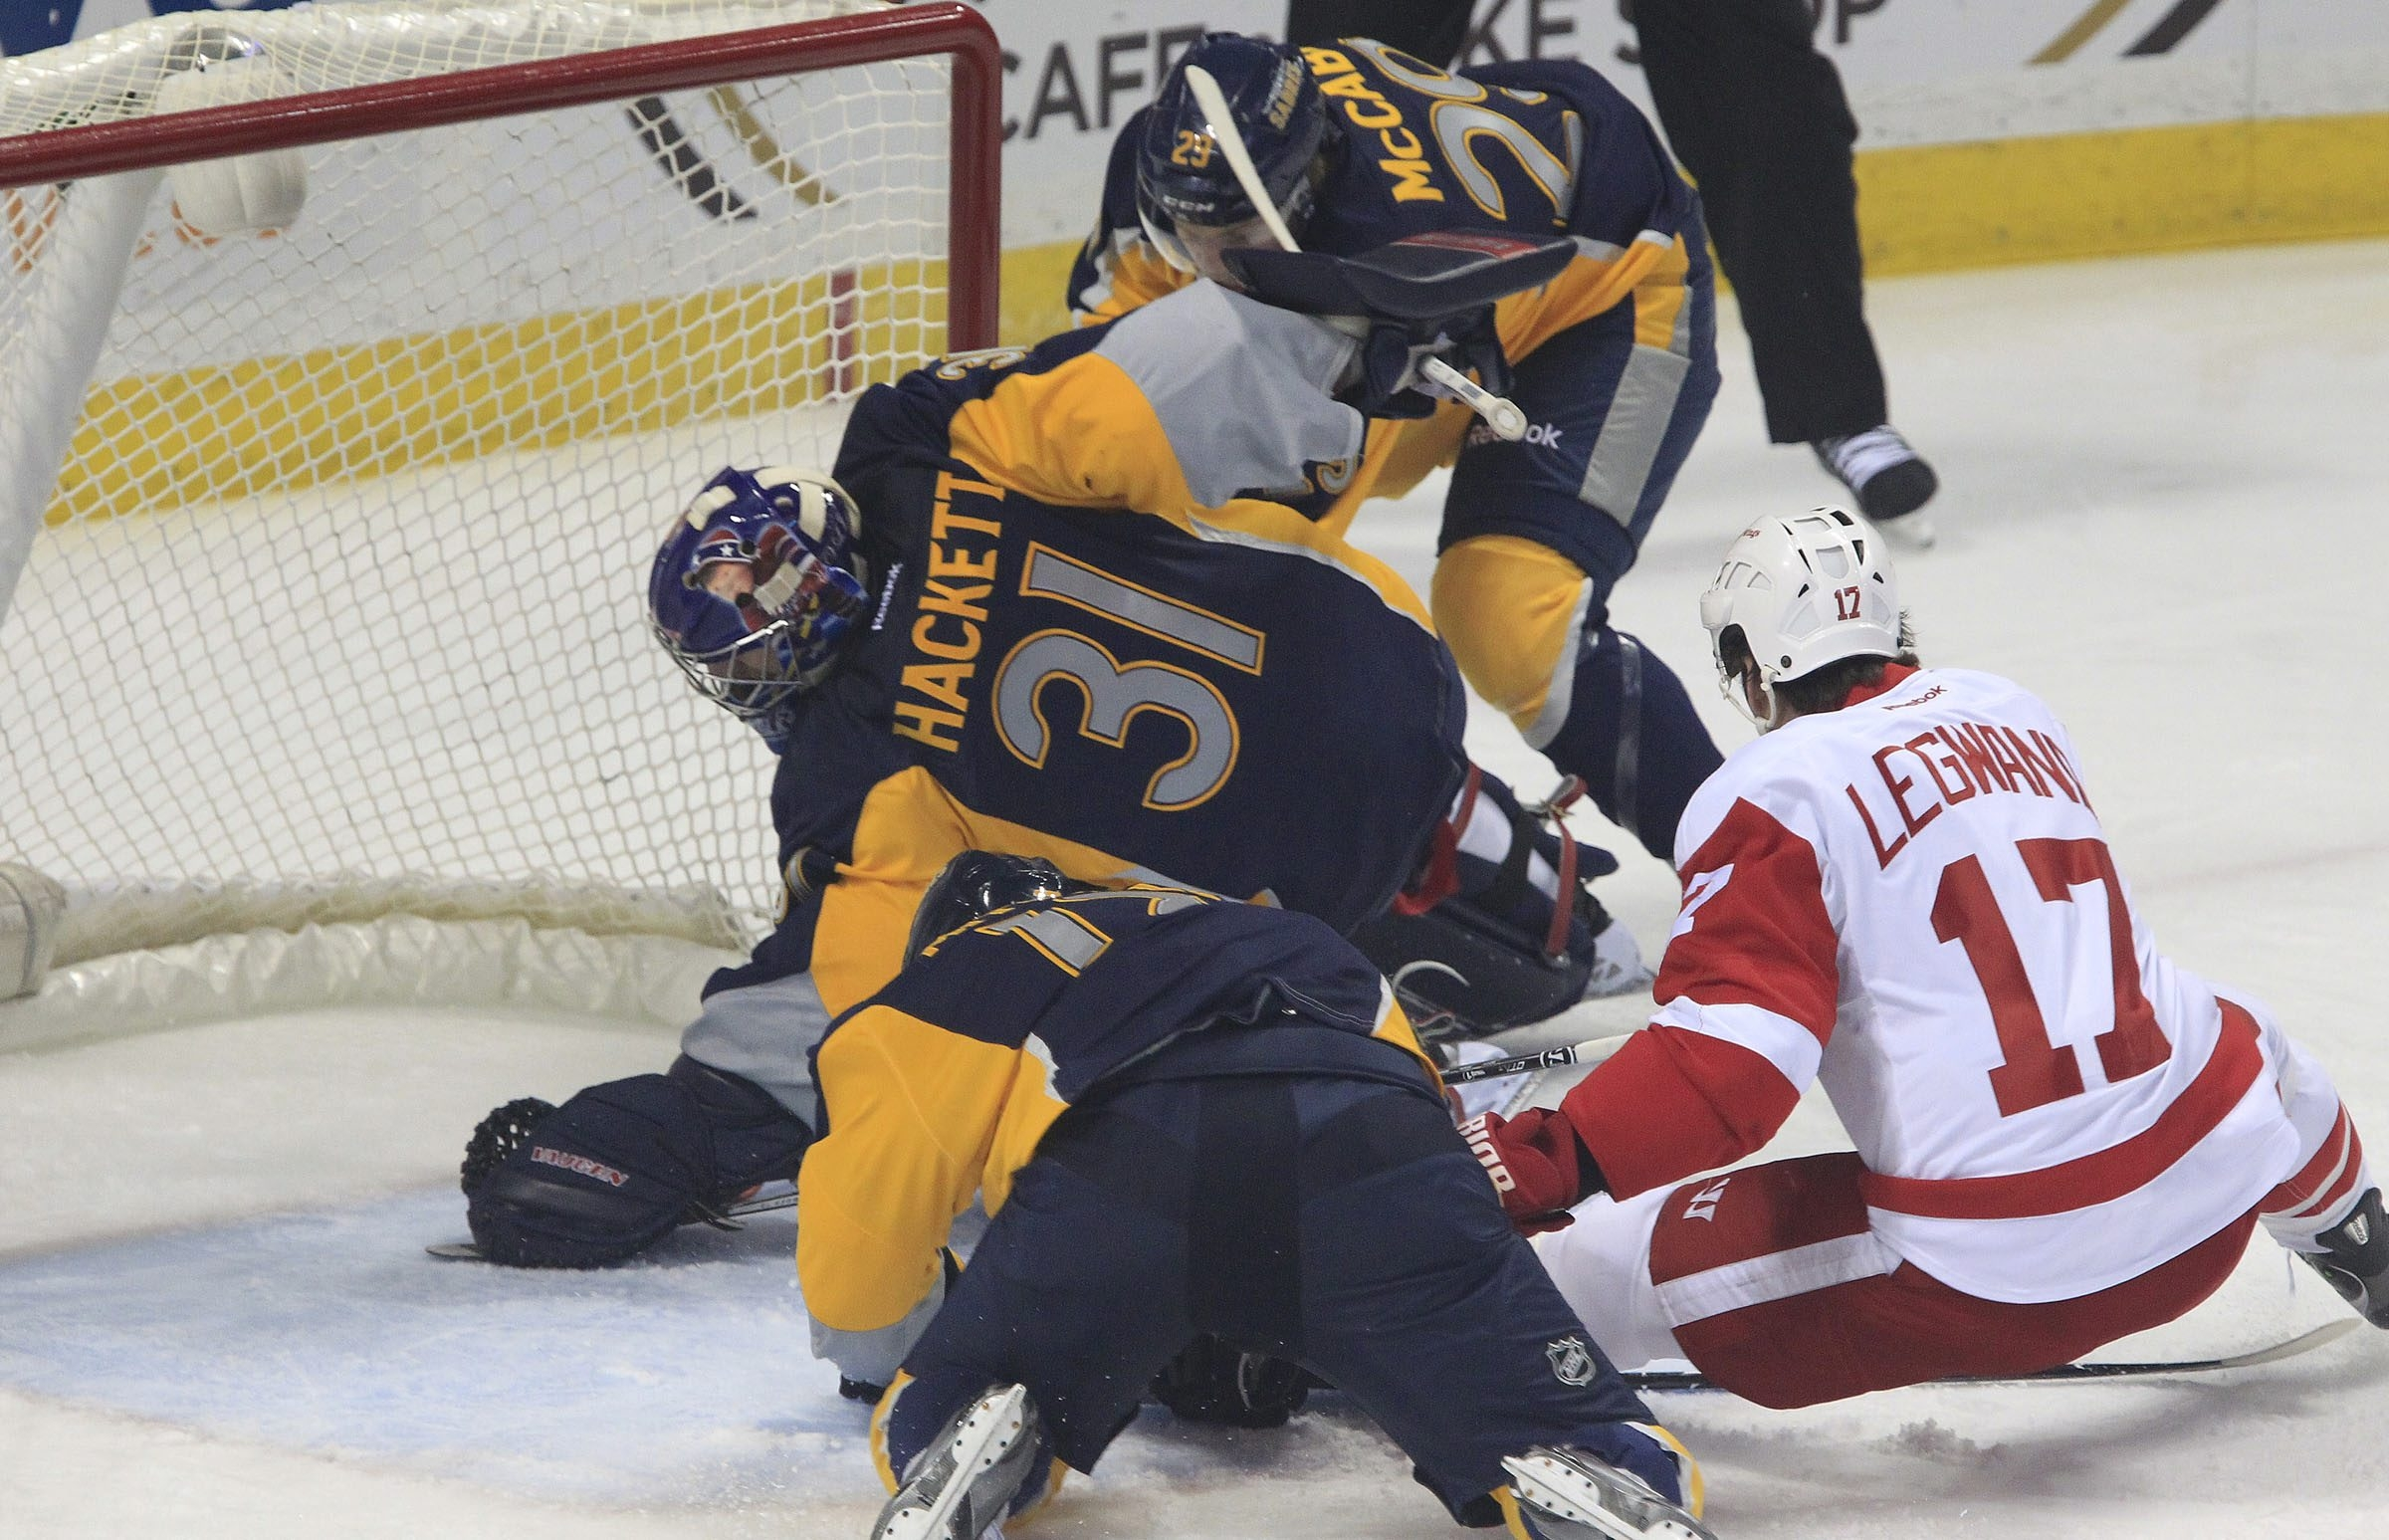 Sabres goaltender Matt Hackett reaches into the crease to stop a Detroit Red Wing shot in the first period at First Niagara Center.